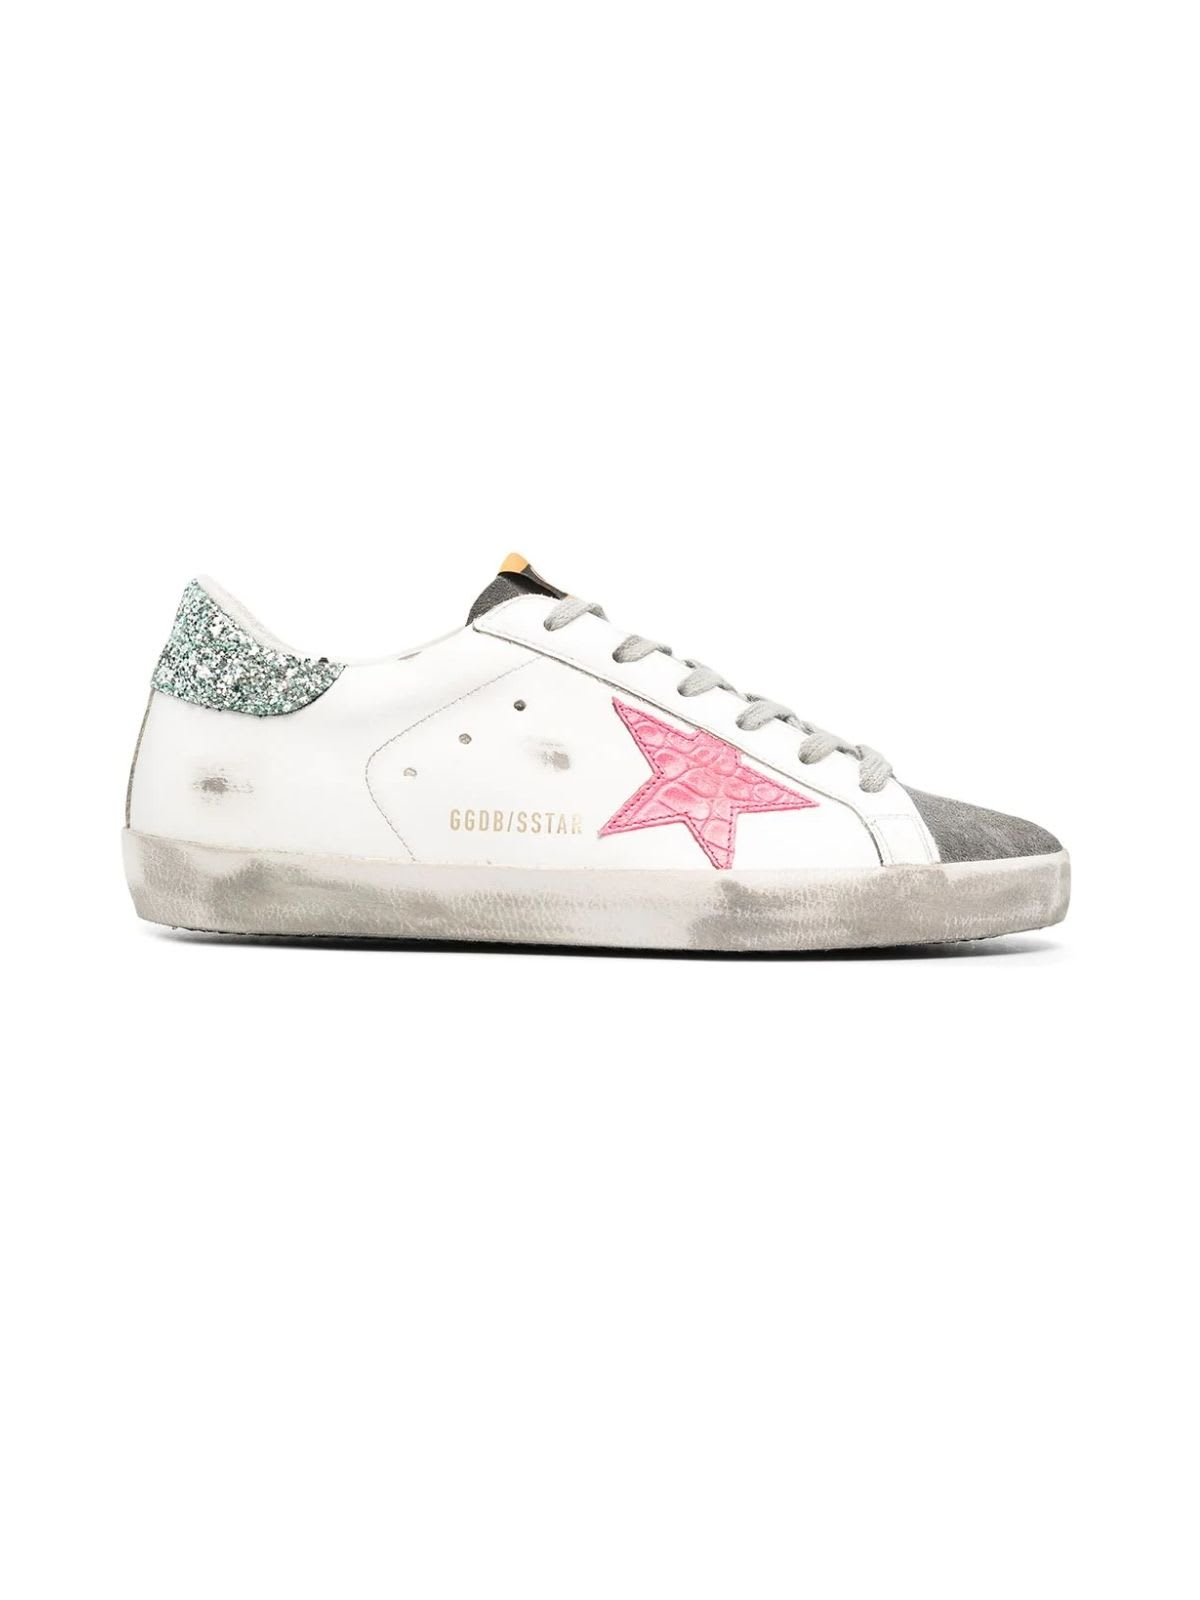 Golden Goose SUPER-STAR LEATHER UPPER COCCO PRINT STAR GLITTER HEEL